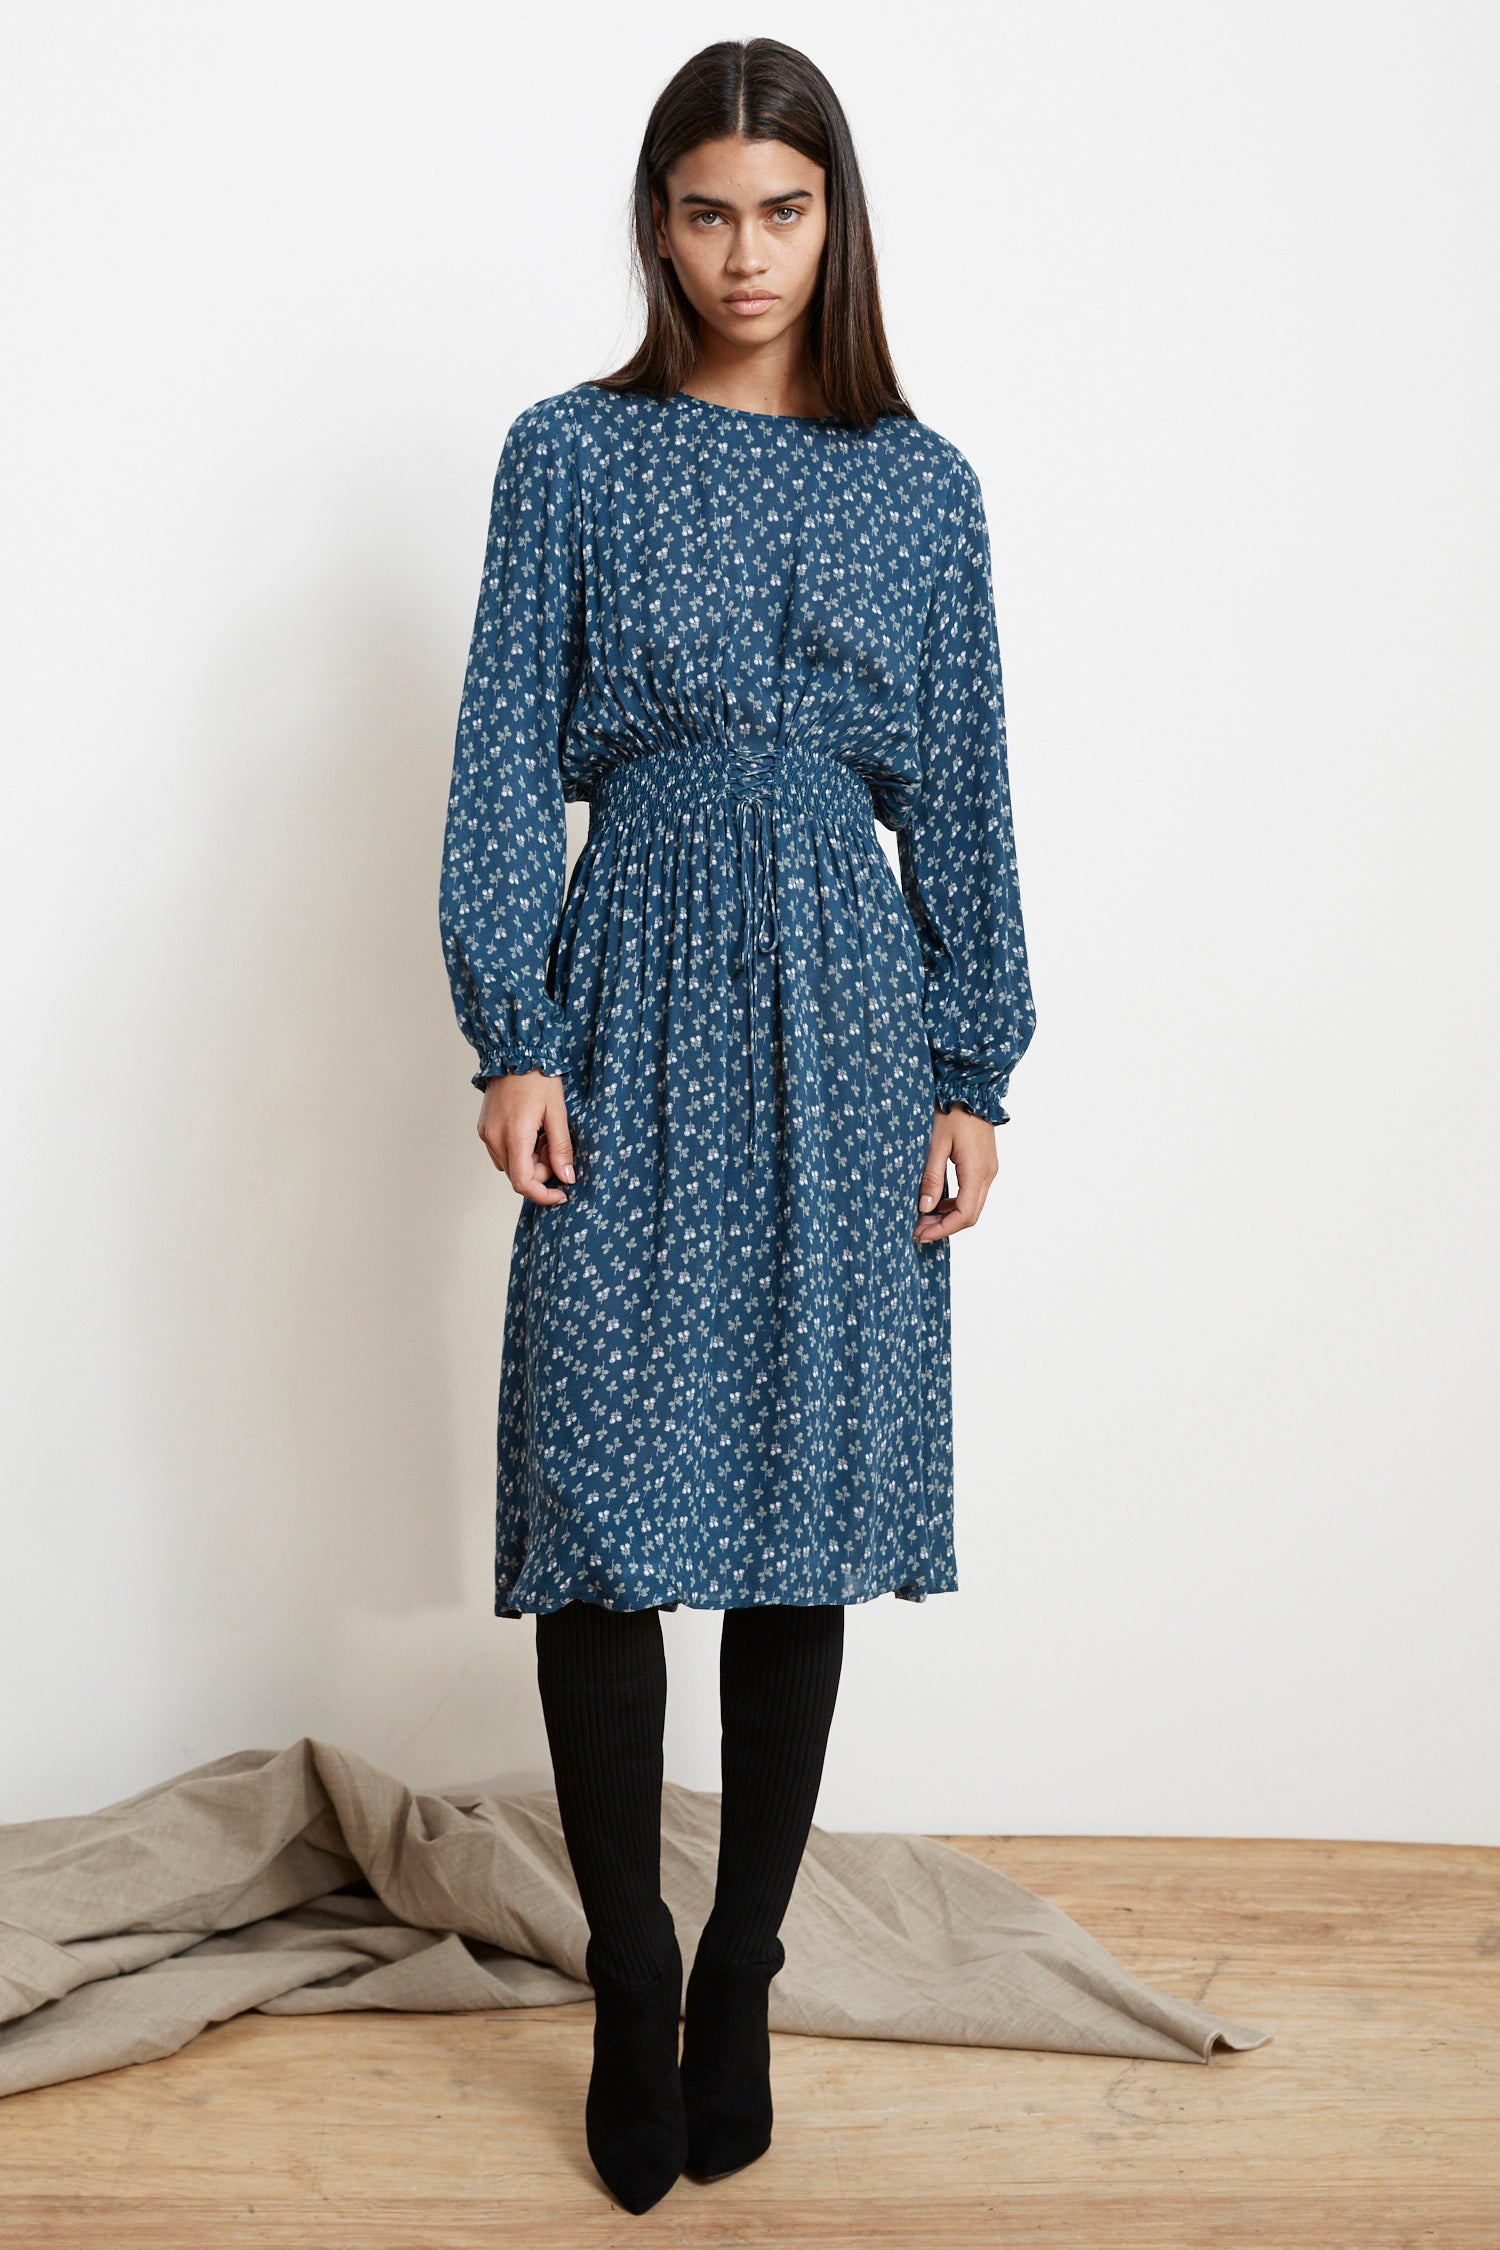 SHIVAN SHEER PRINTED GAUZE SMOCKED WAIST DRESS IN BLUE SPRUCE